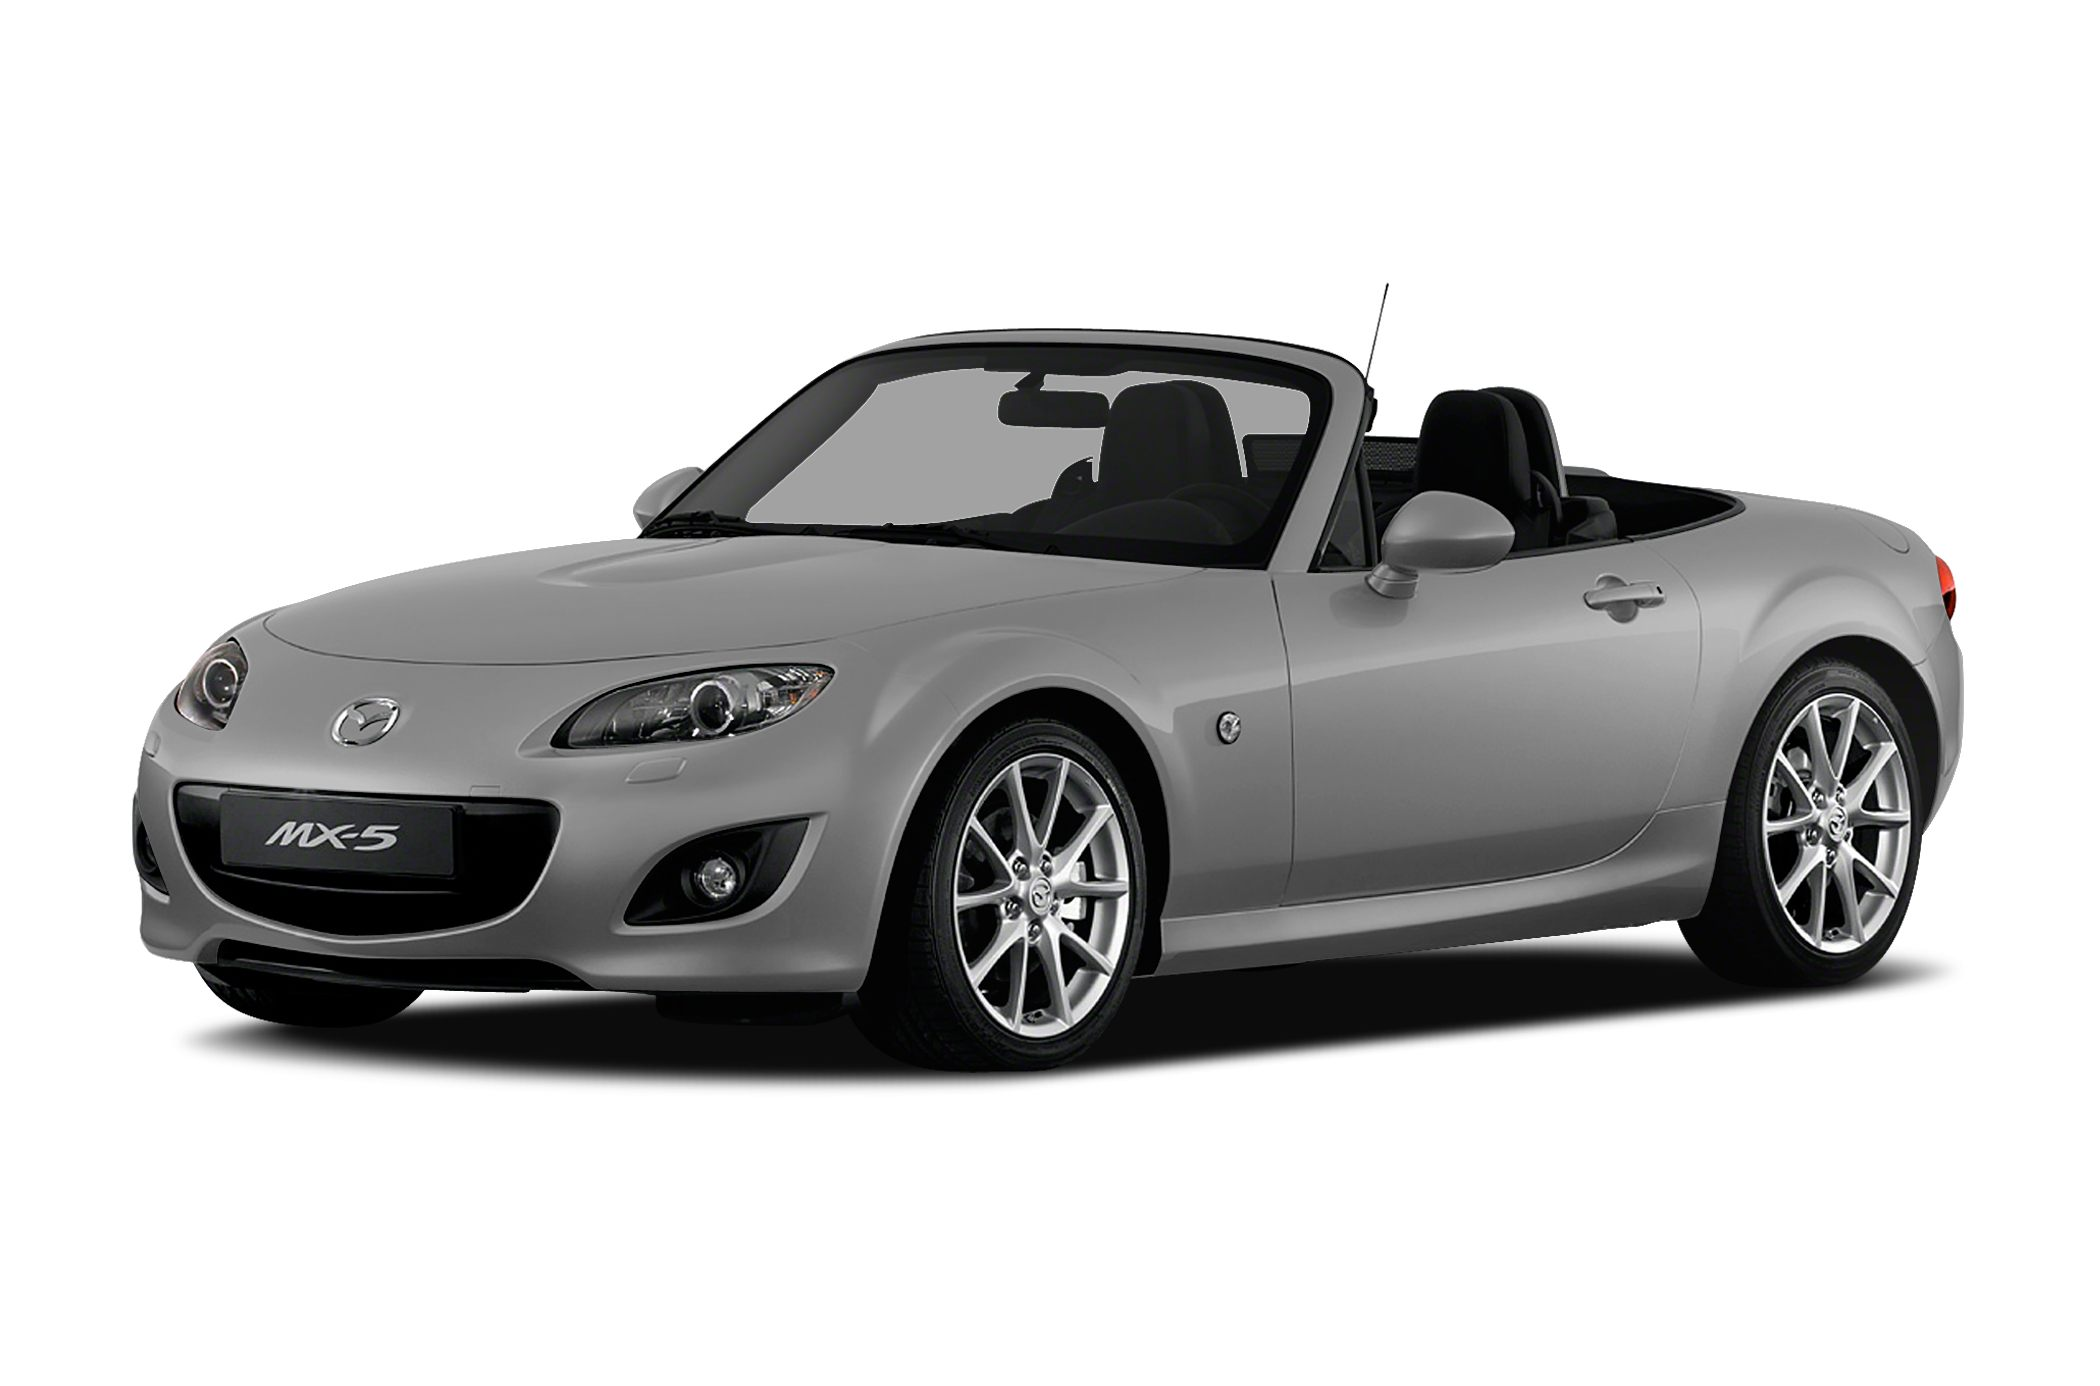 2012 Mazda Miata MX-5 Sport Convertible for sale in Melbourne for $15,797 with 23,809 miles.